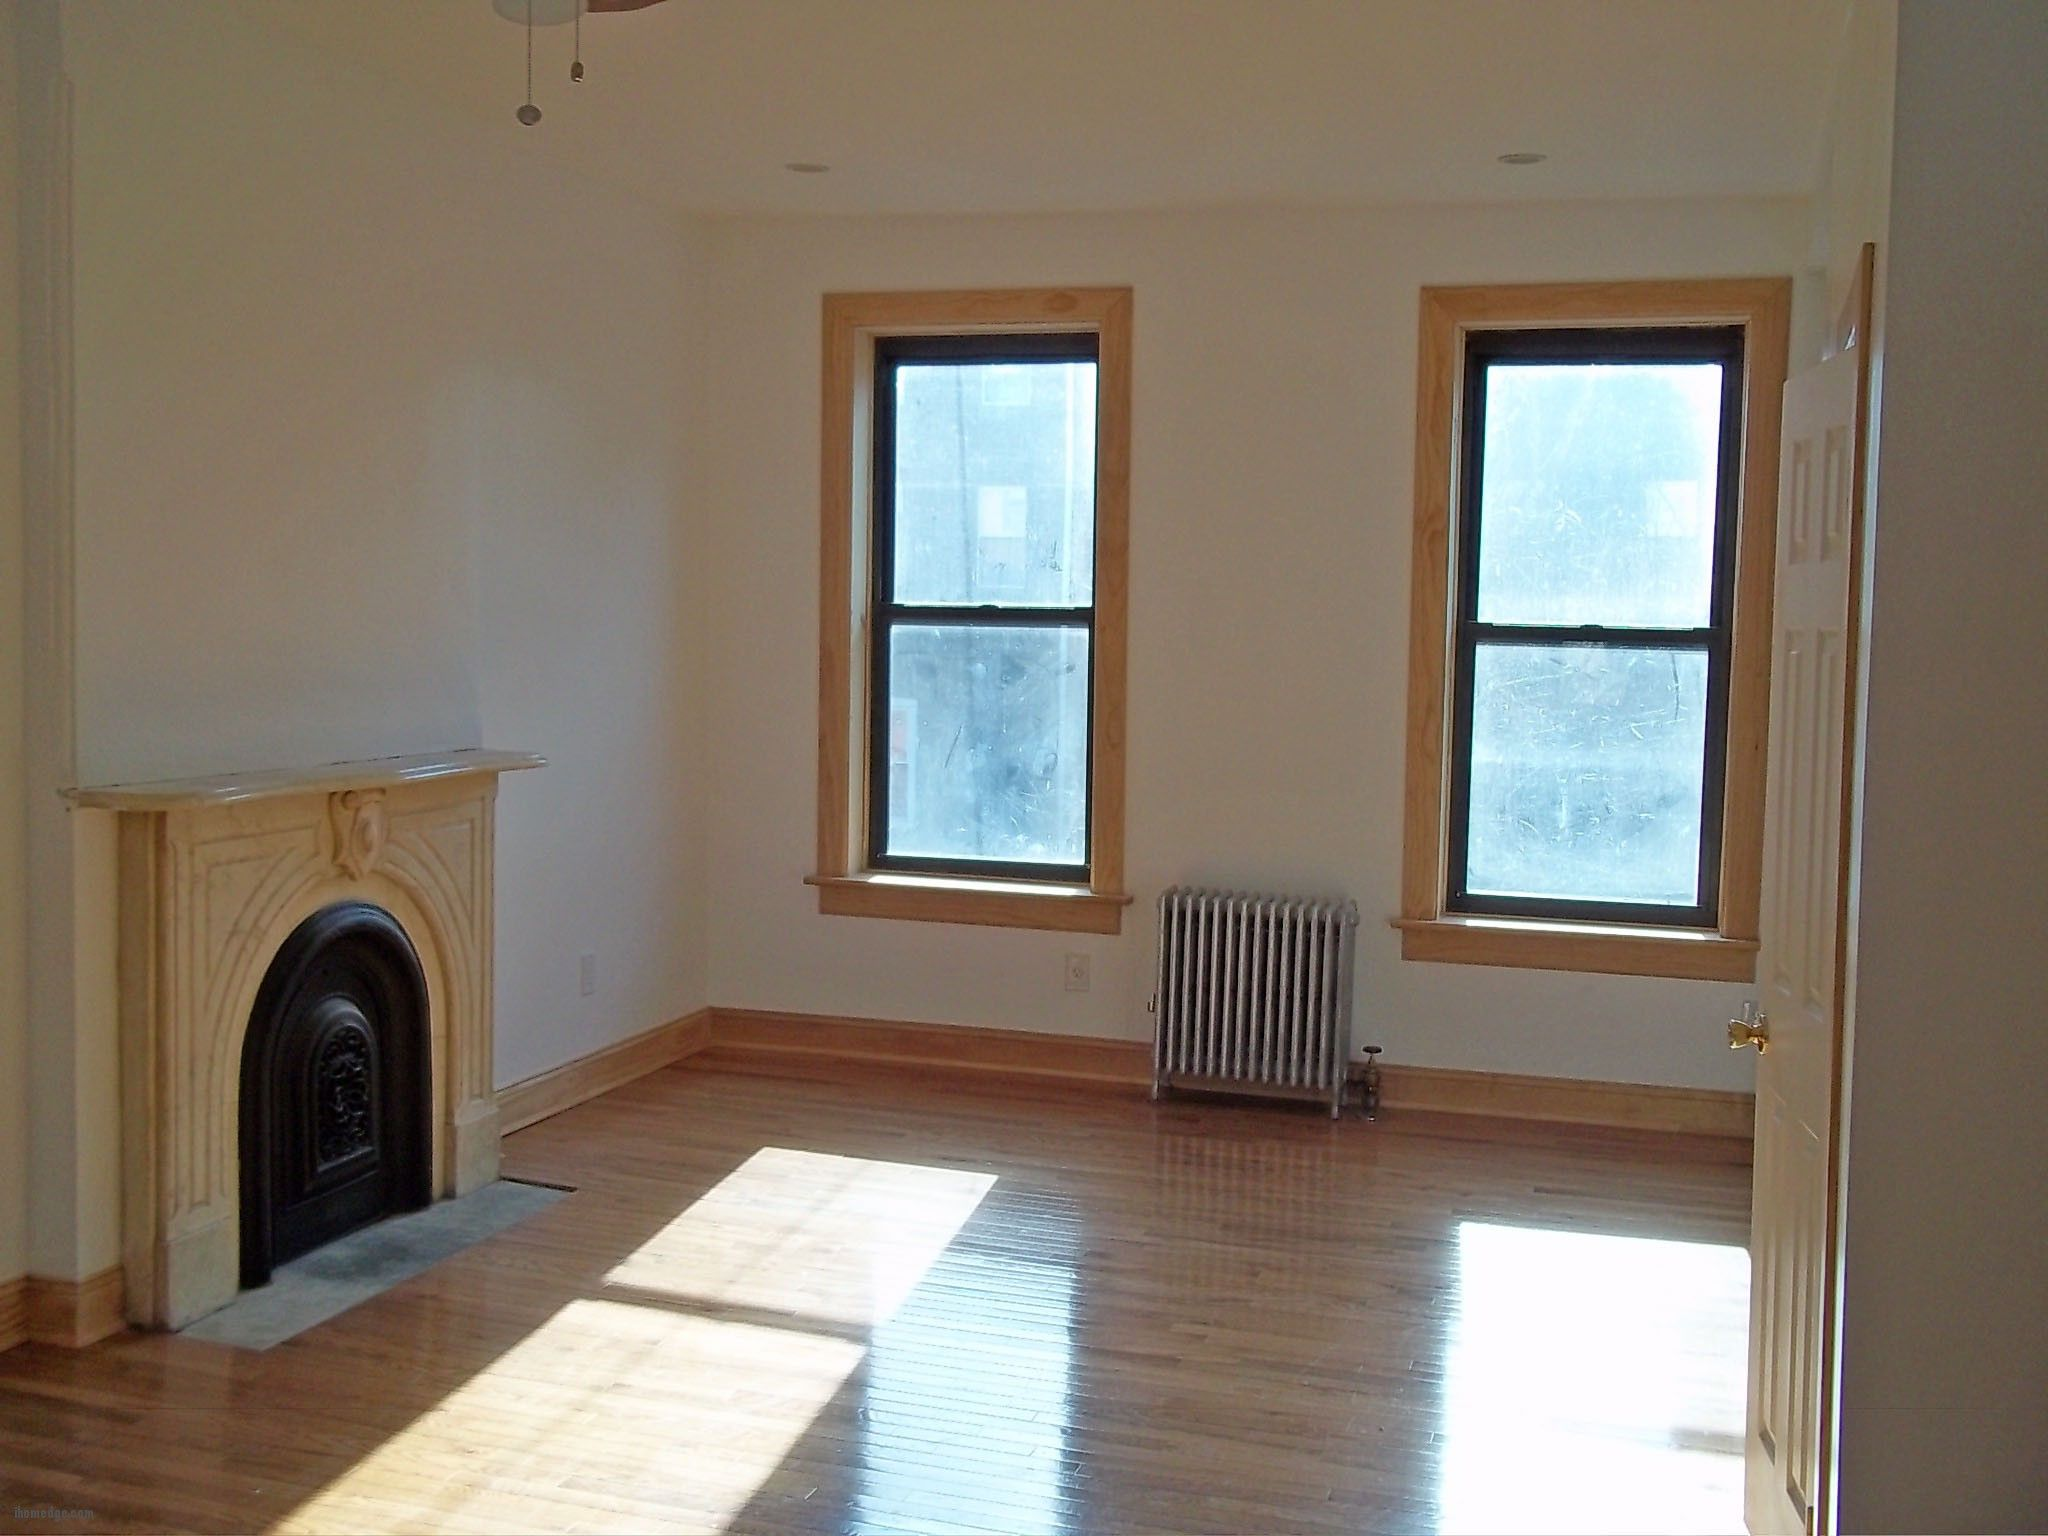 Inspirational Best Of Brooklyn Apartments for Rent